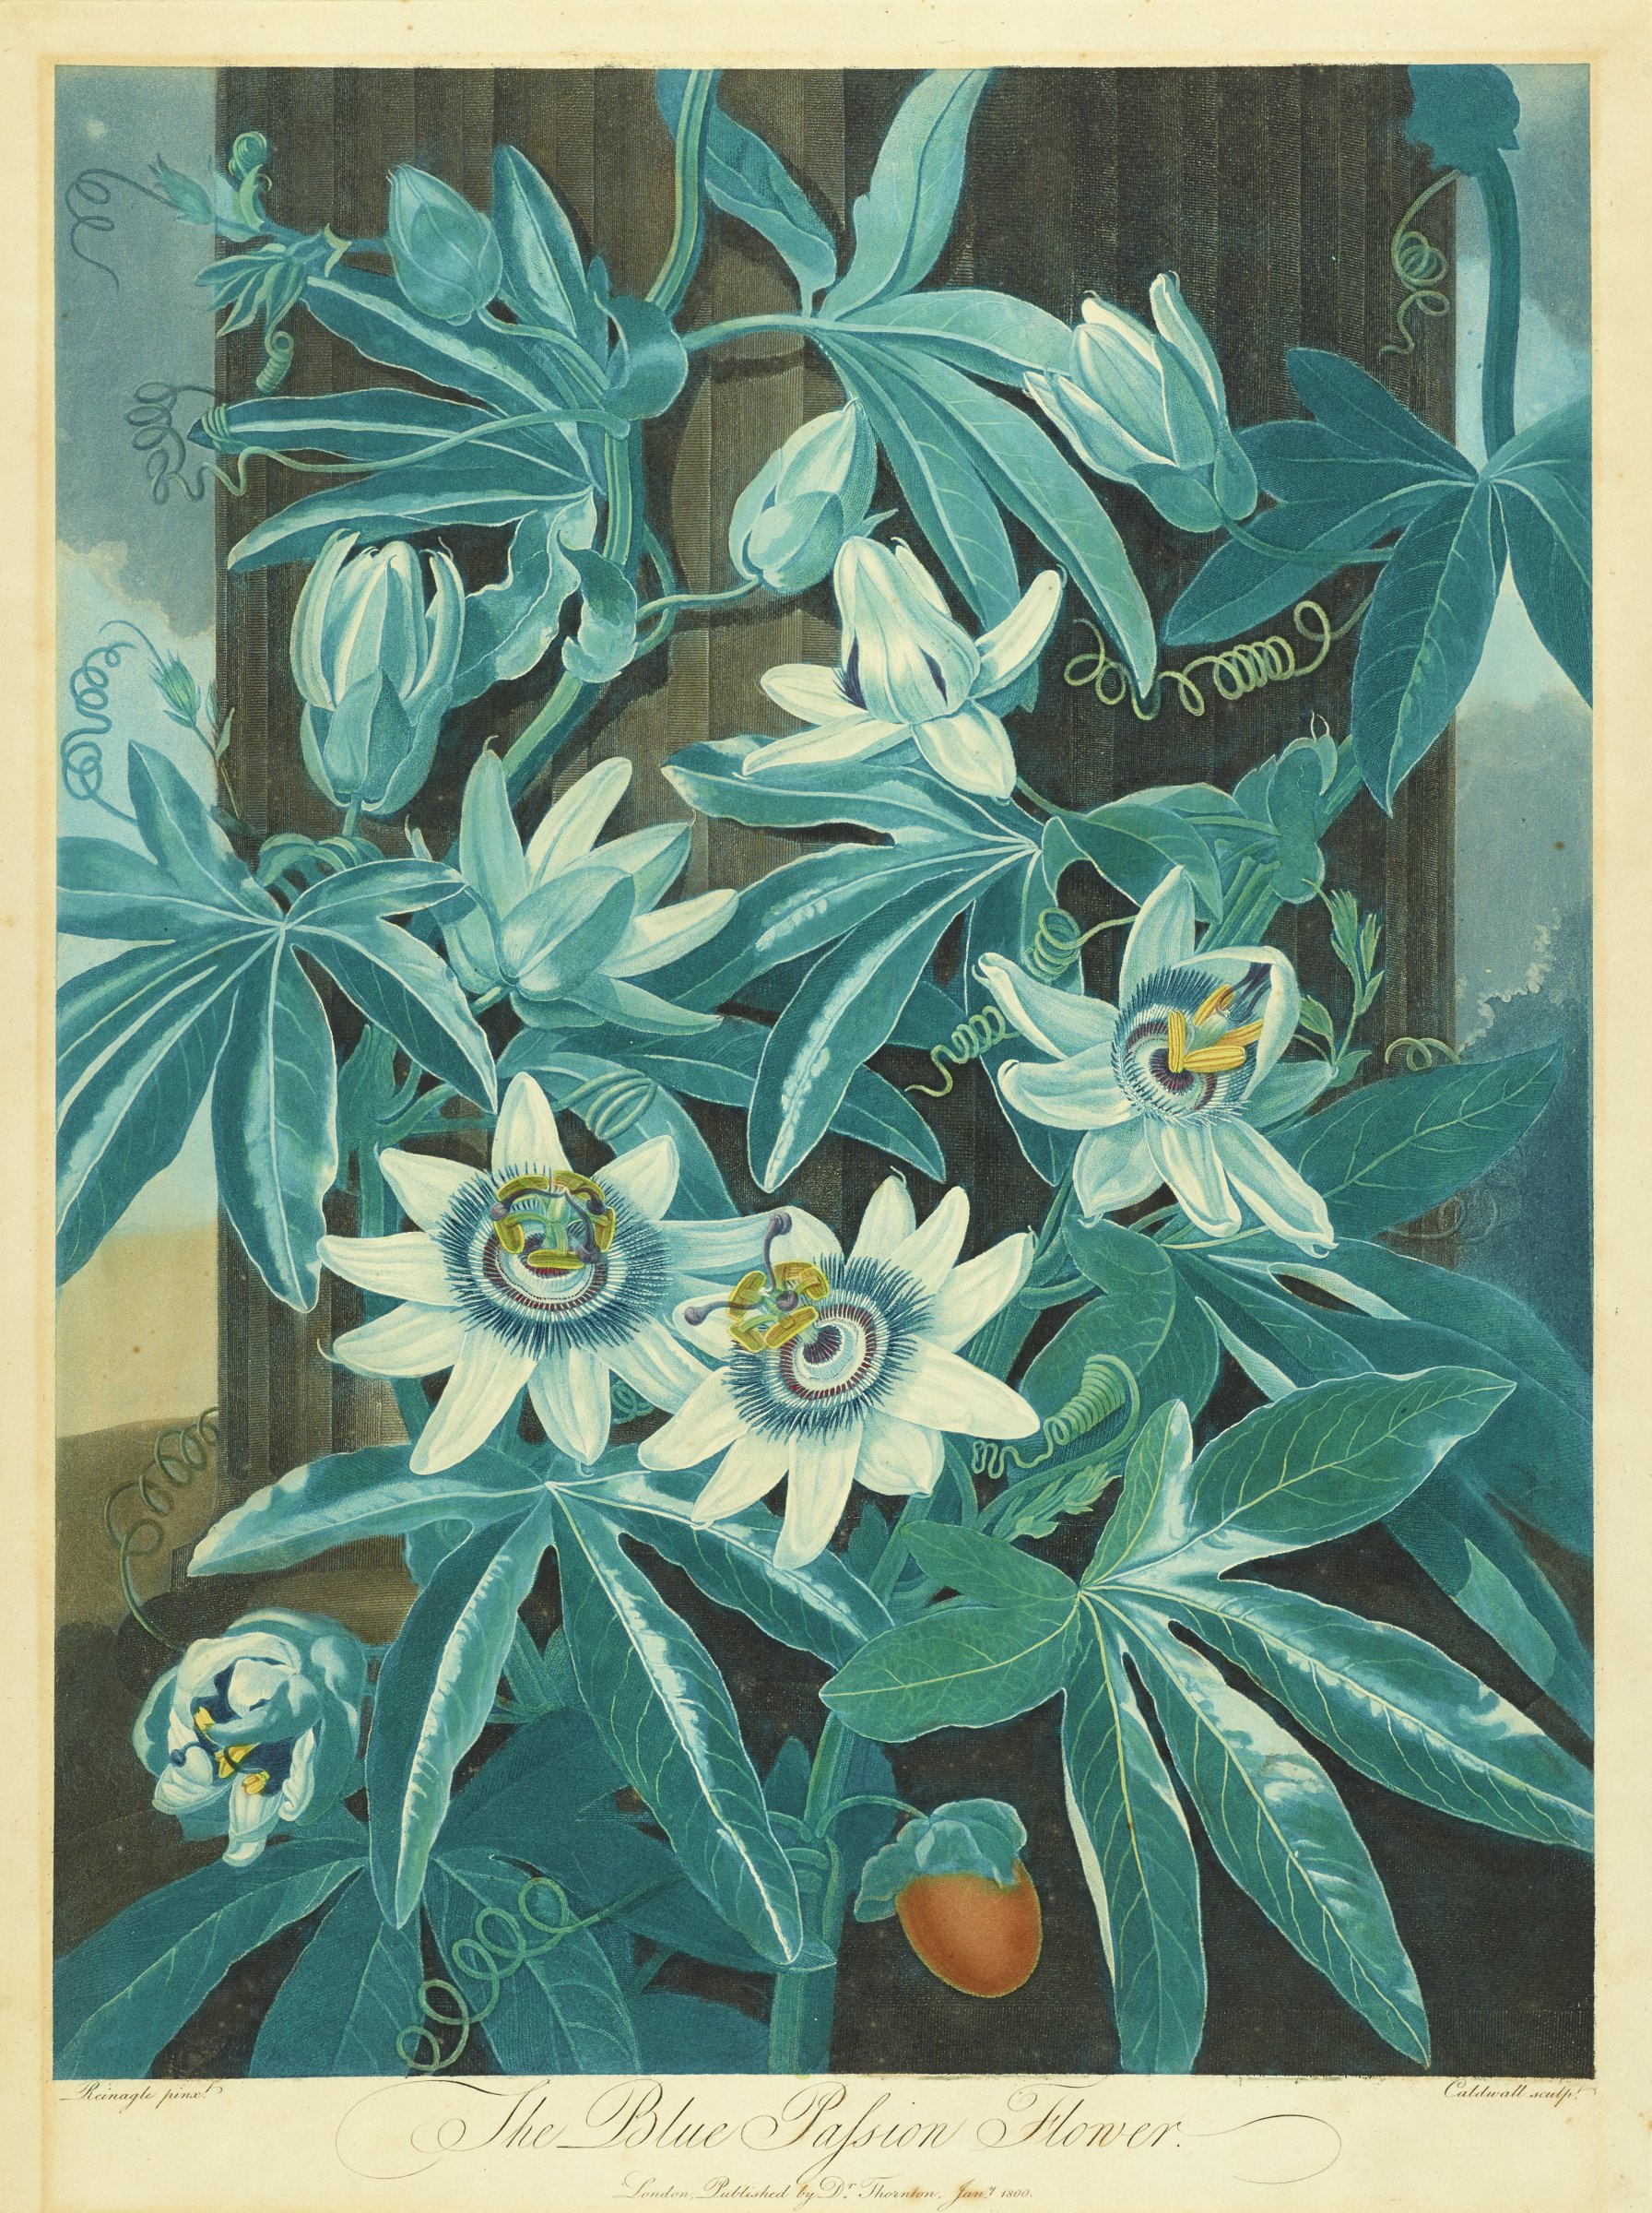 Plant with white blossoms and buds in various stages in front of a fluted column.